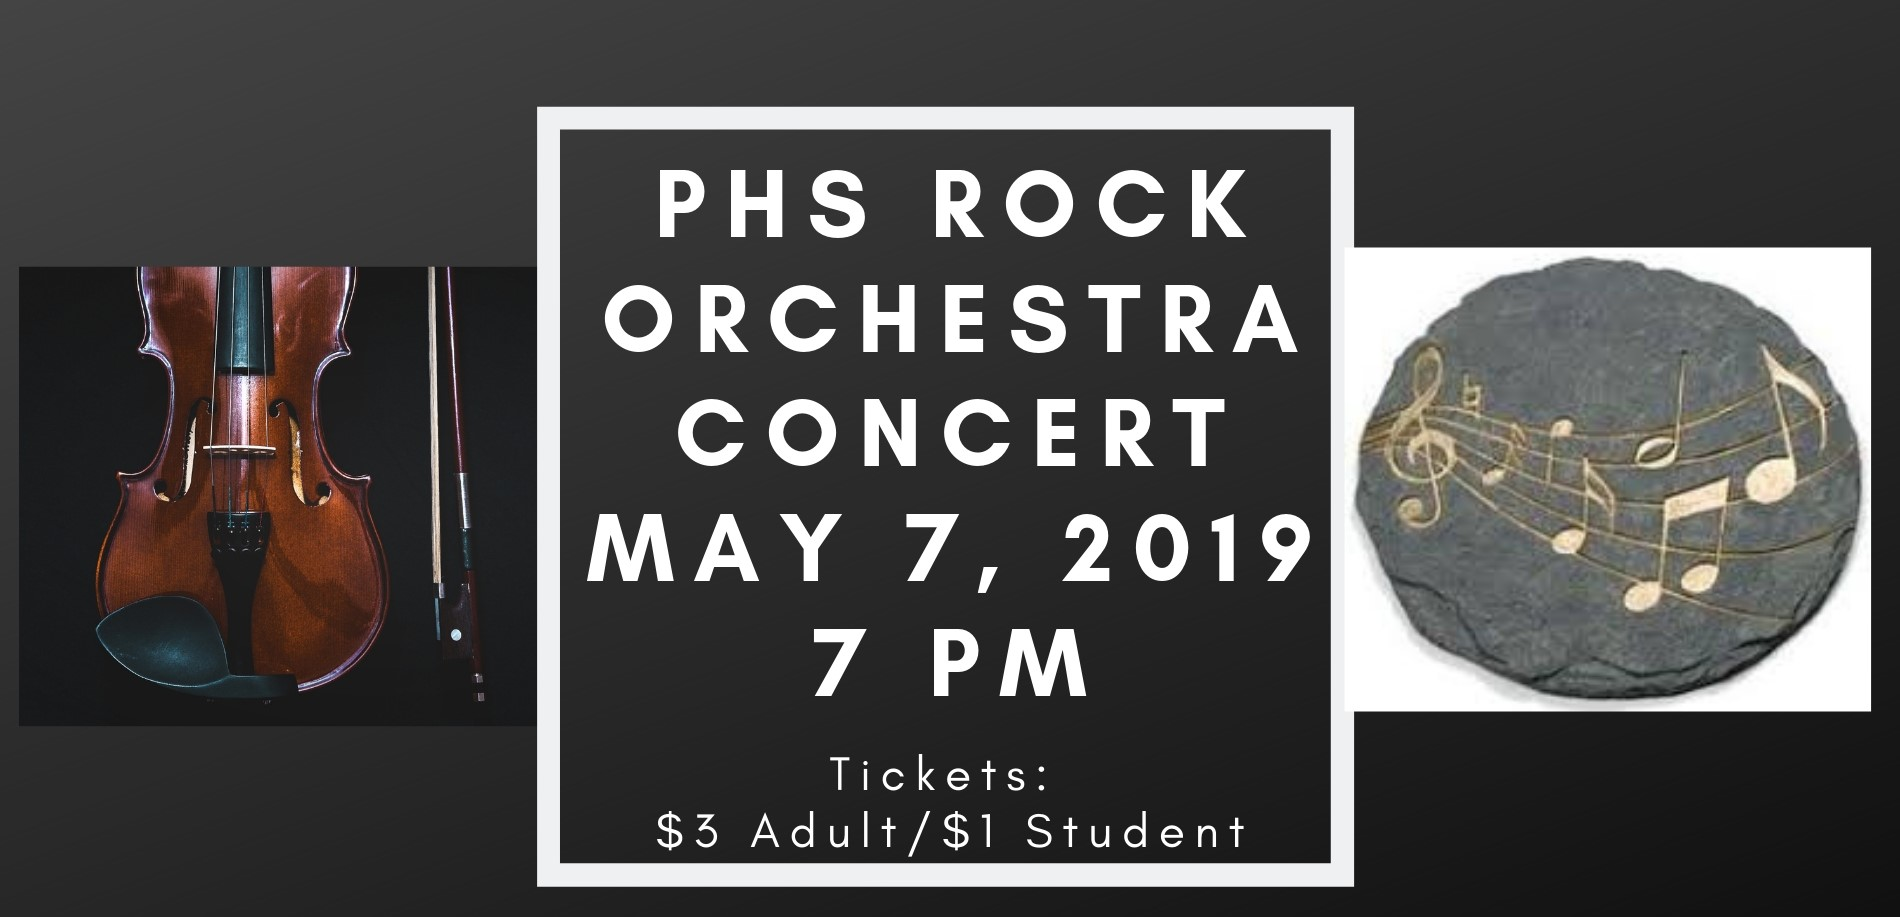 Orchestra ISSMA Concert May 7, 2019